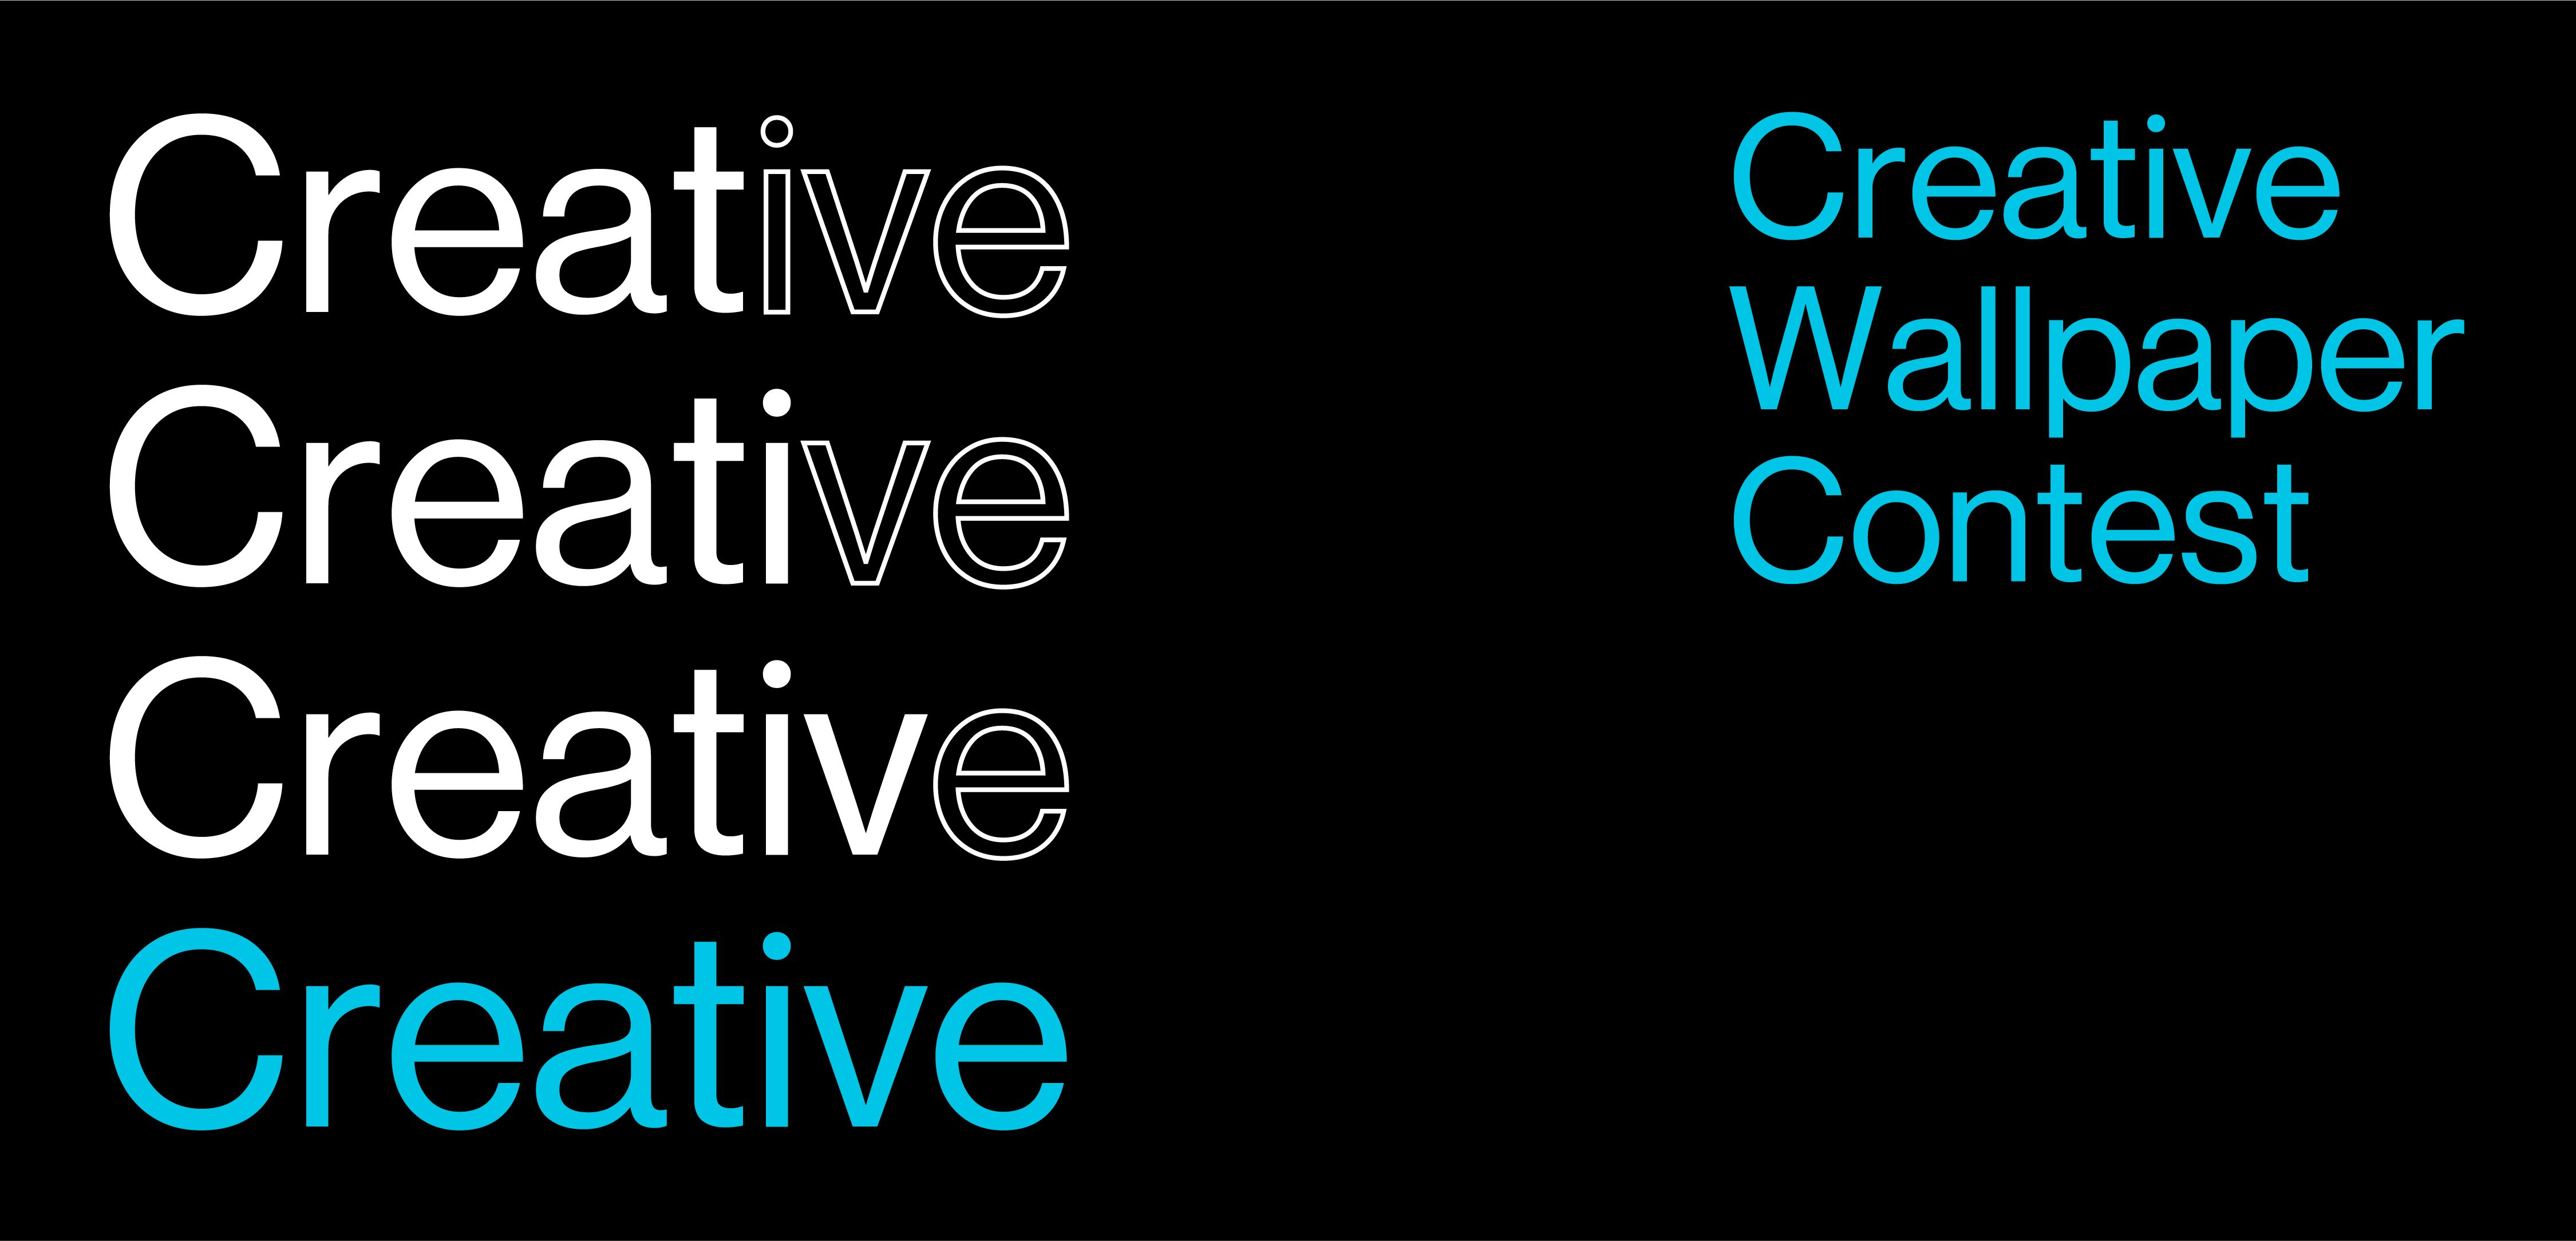 Creative Wallpaper Campaign_all_Community Forum Header.jpg